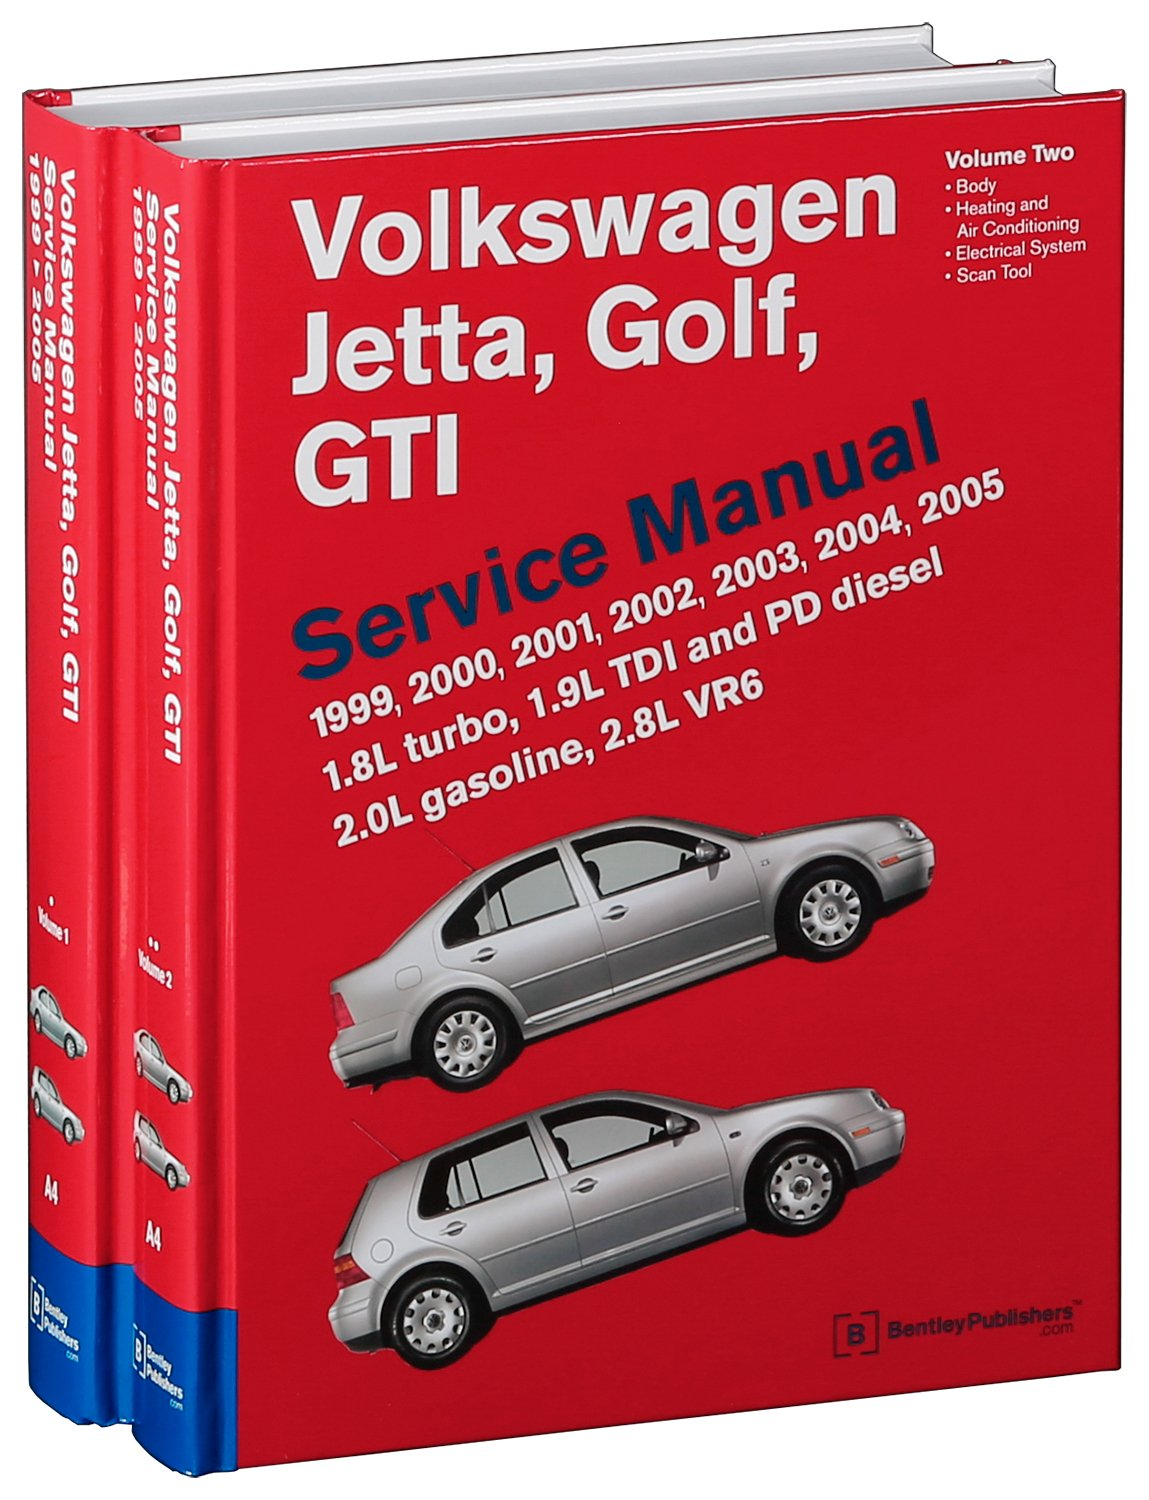 Volkswagen Jetta Golf Gti A4 Service Manual 1999 2000 2001 2002 1 8l Engine Diagram 2003 2004 2005 18l Turbo 19l Tdi Diesel Pd 20l Gasoline